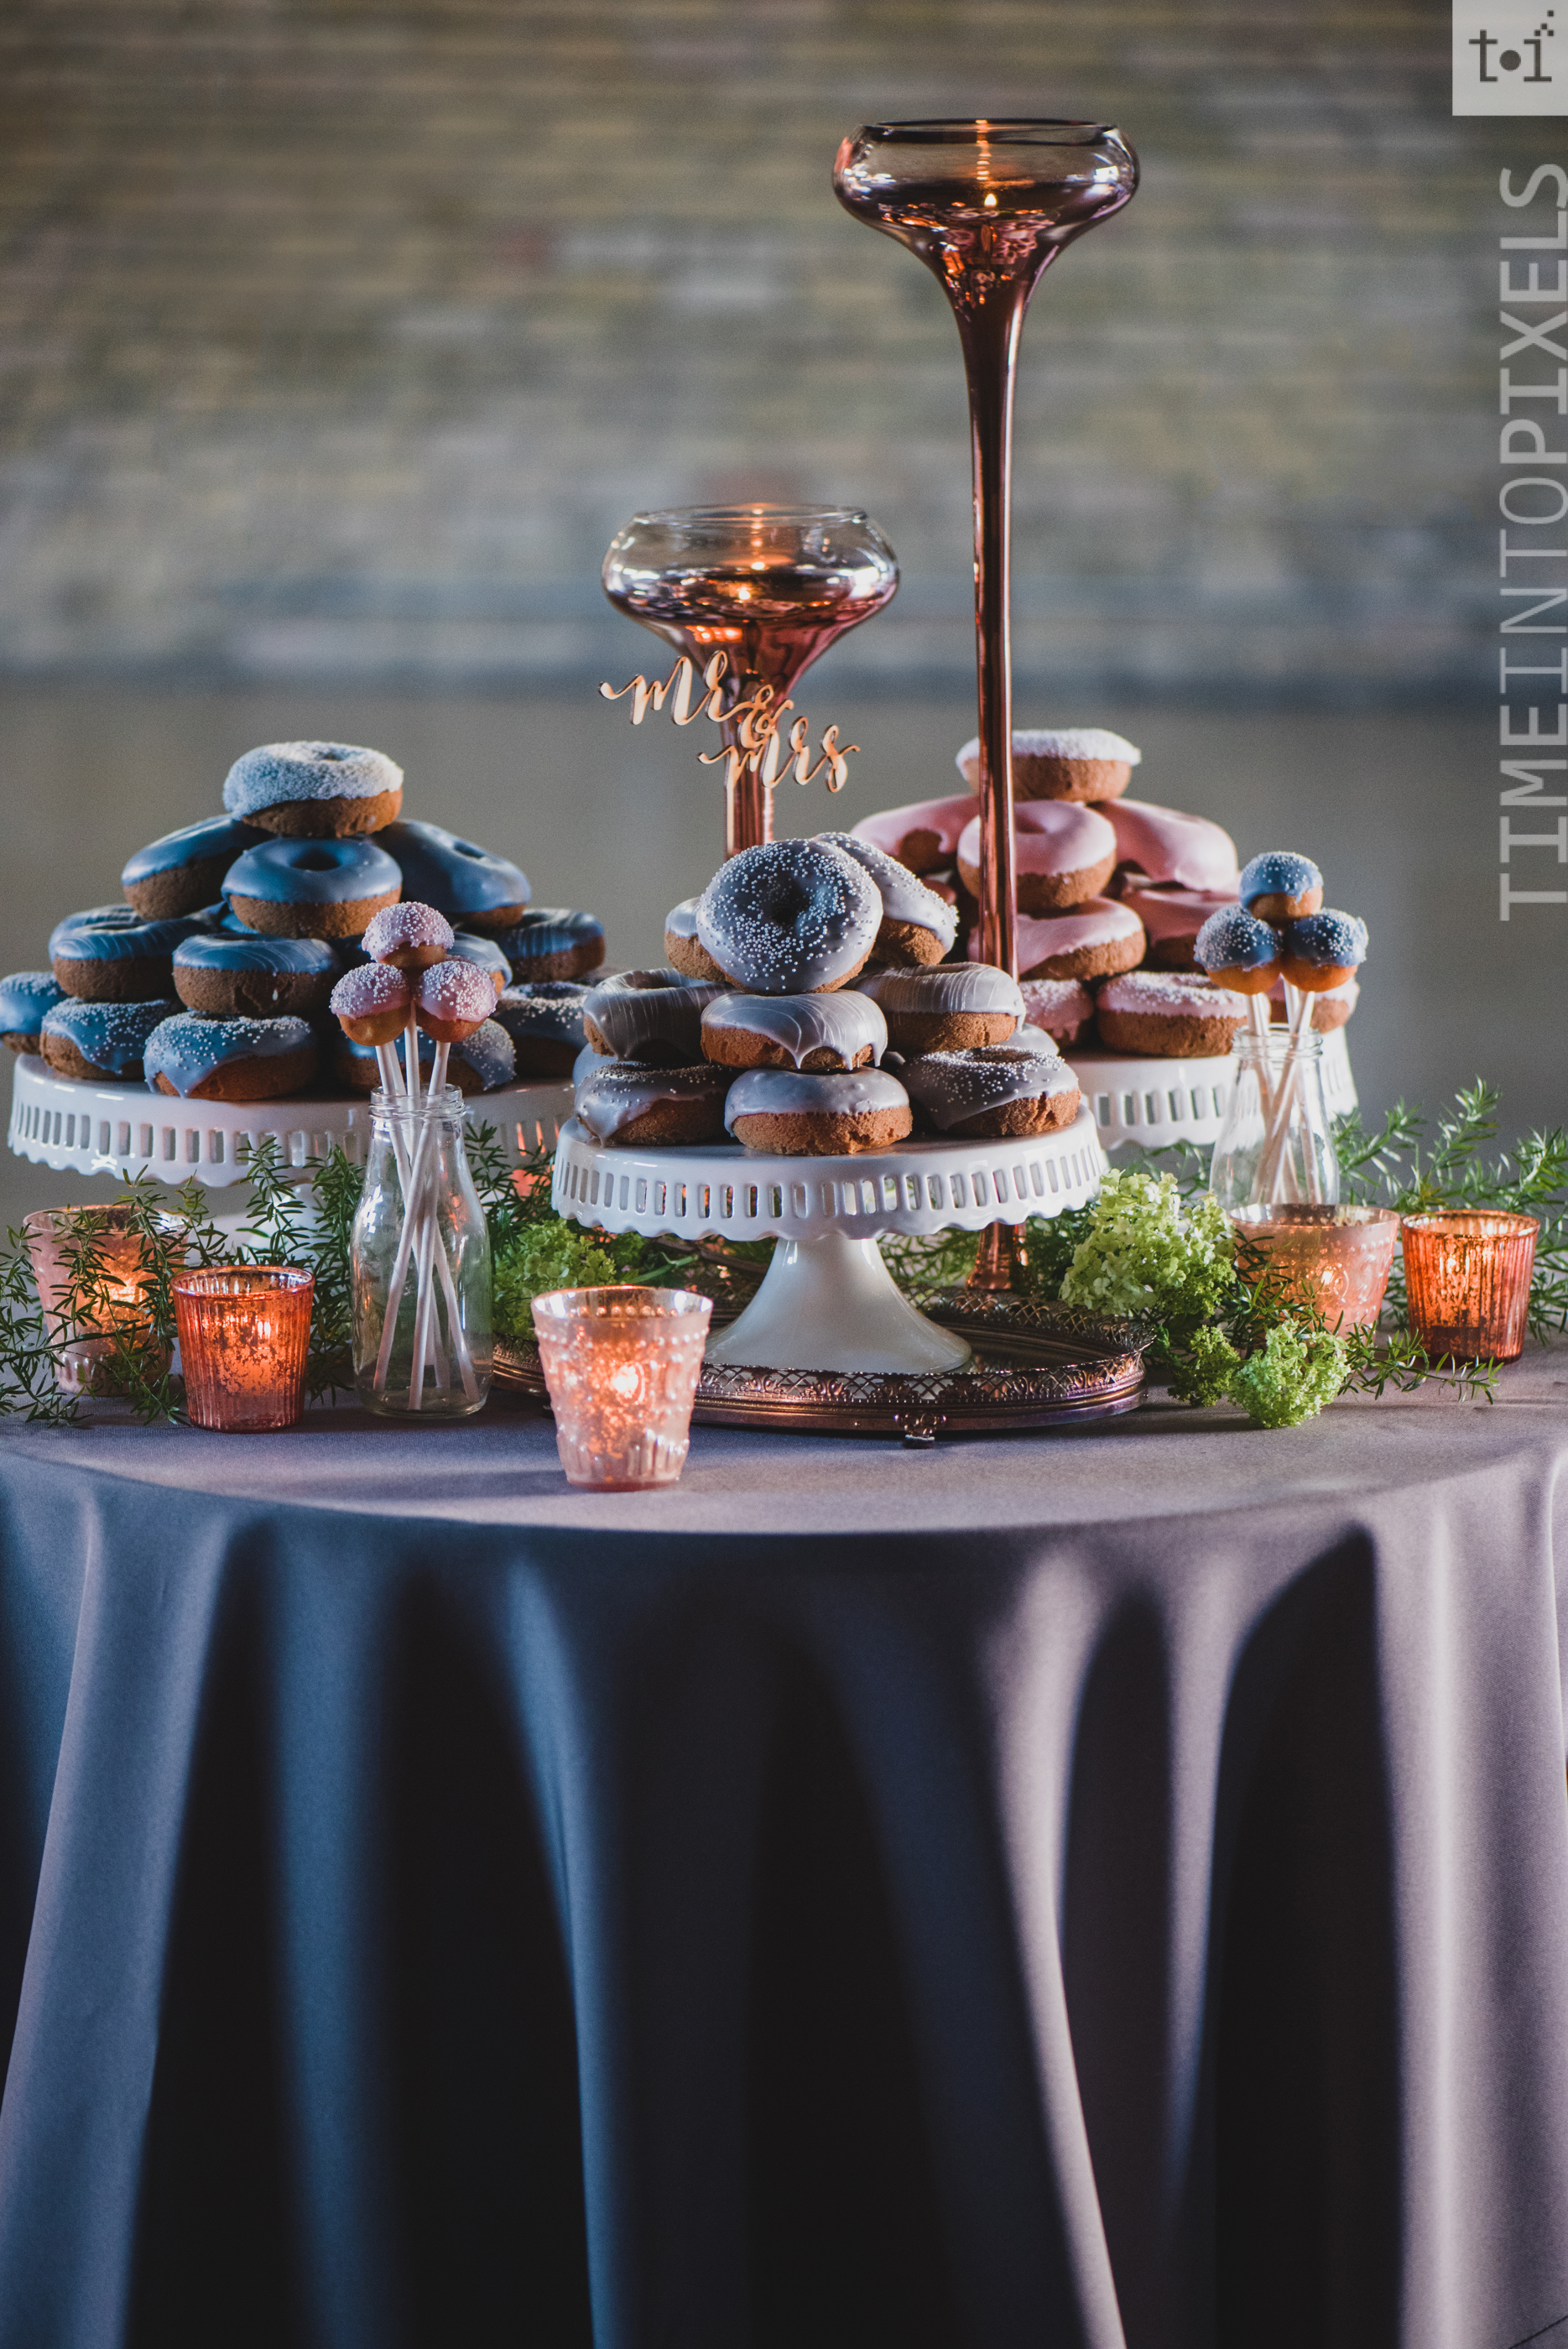 Time Into Pixels Photography-Jessica Wonders Events-Styled Shoot  017.jpg